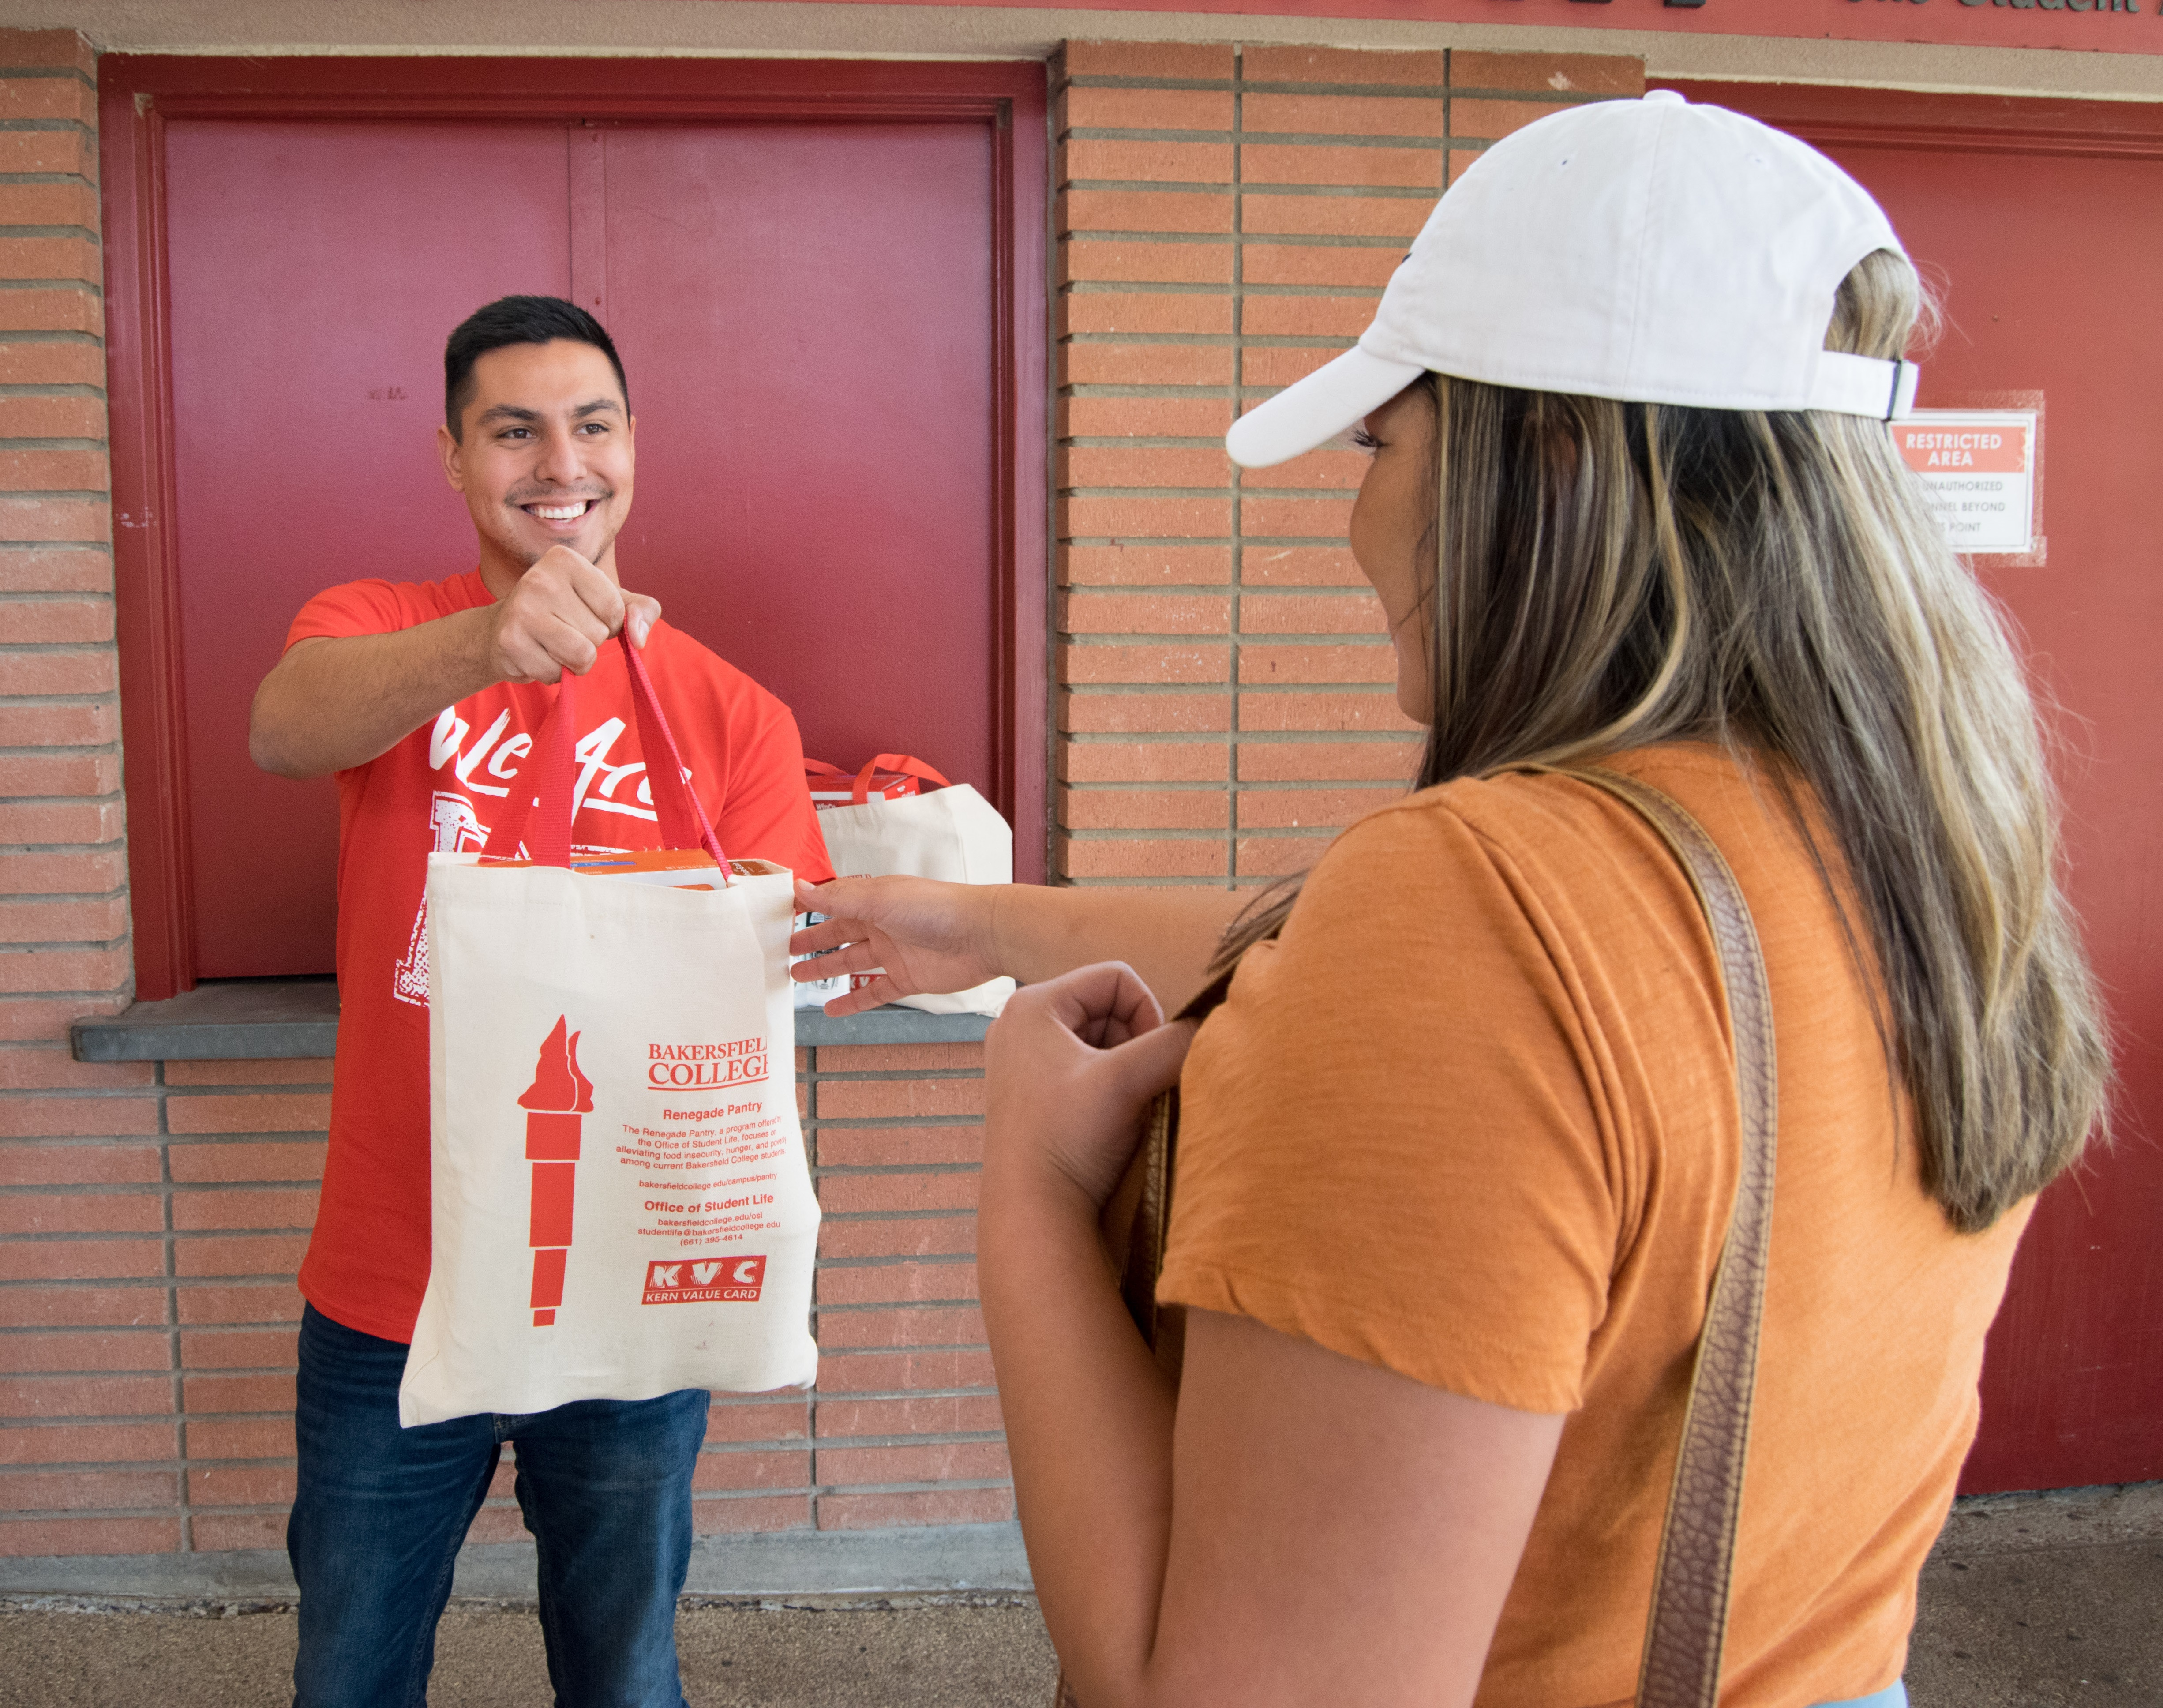 Student hands out Pantry bags